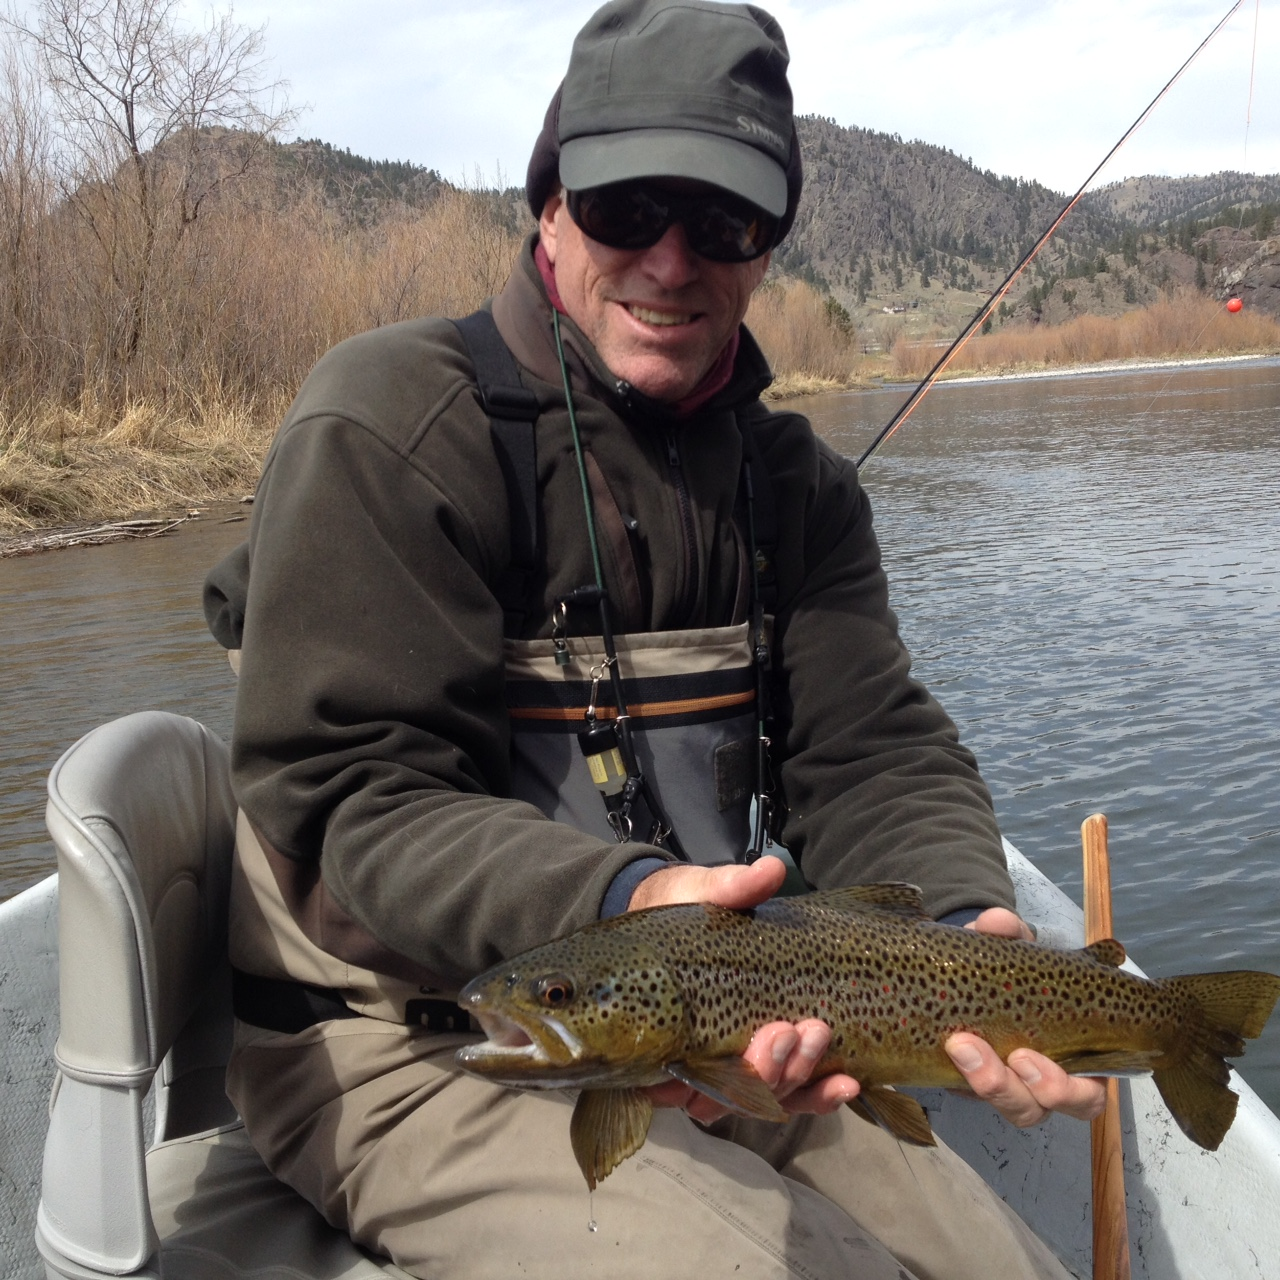 Missouri river fishing report the current seam for Current fishing report